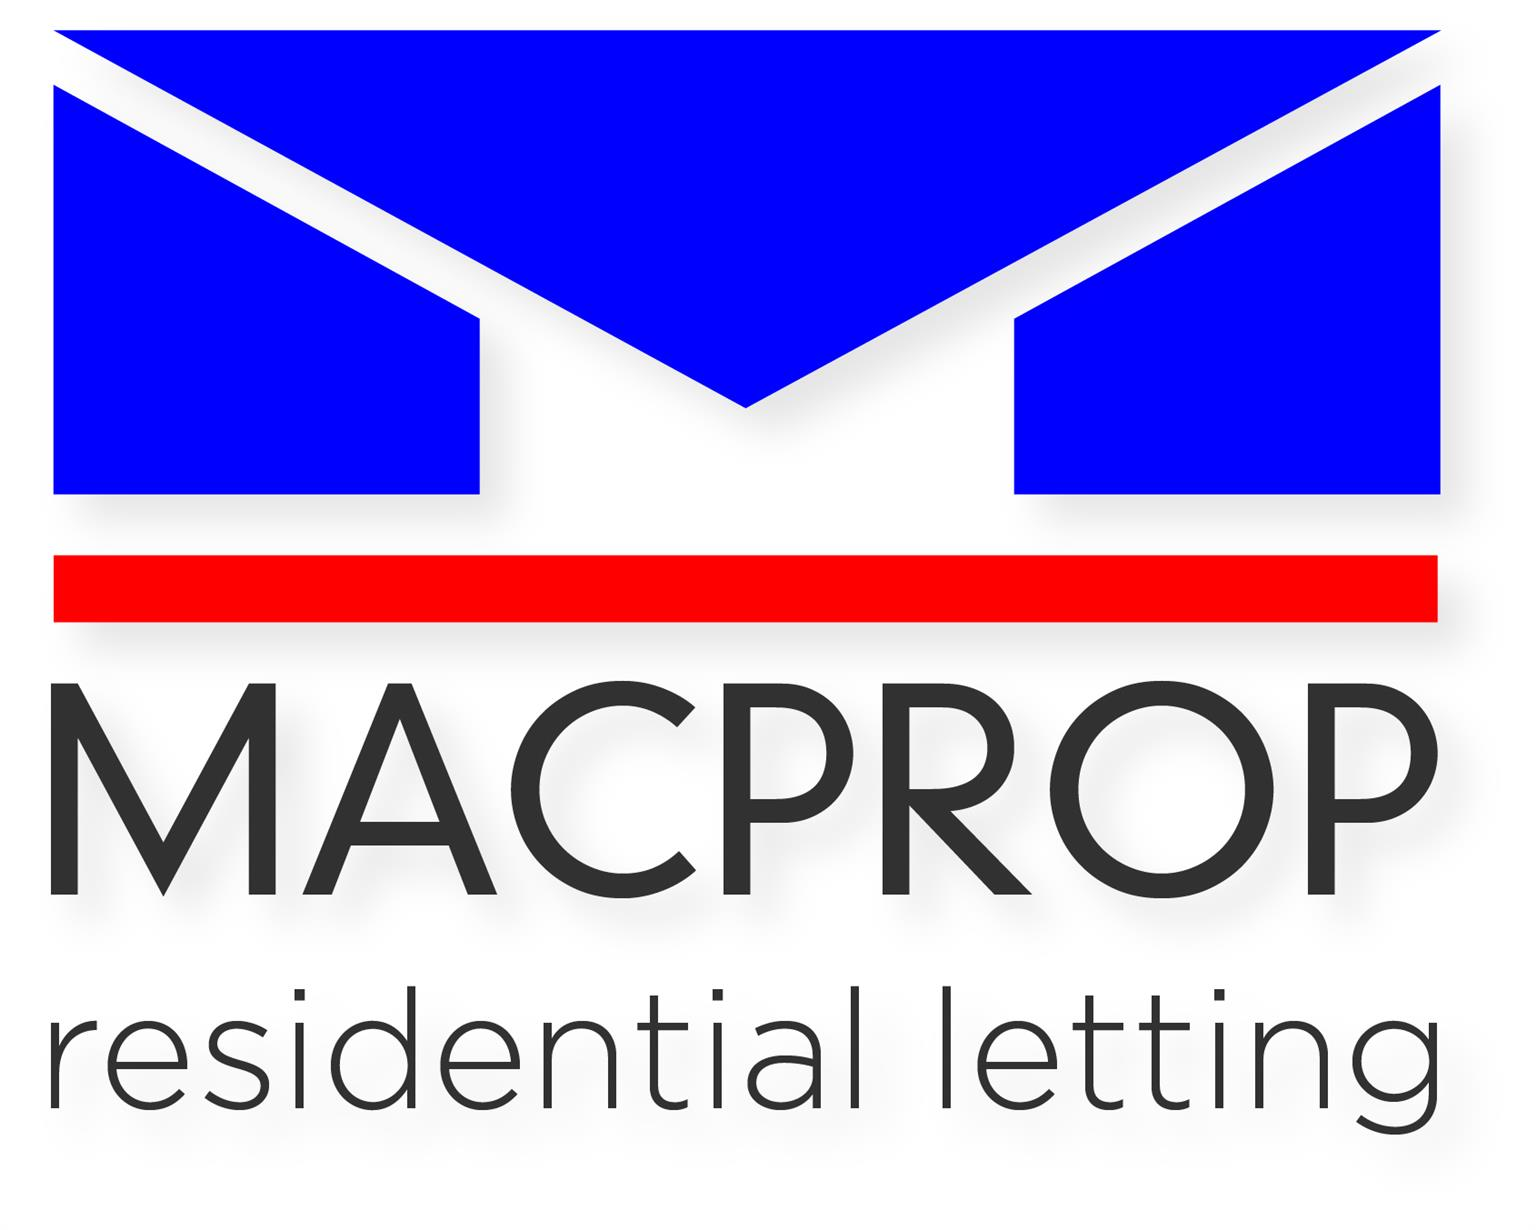 Find Macprop Residential Letting's adverts listed on Junk Mail